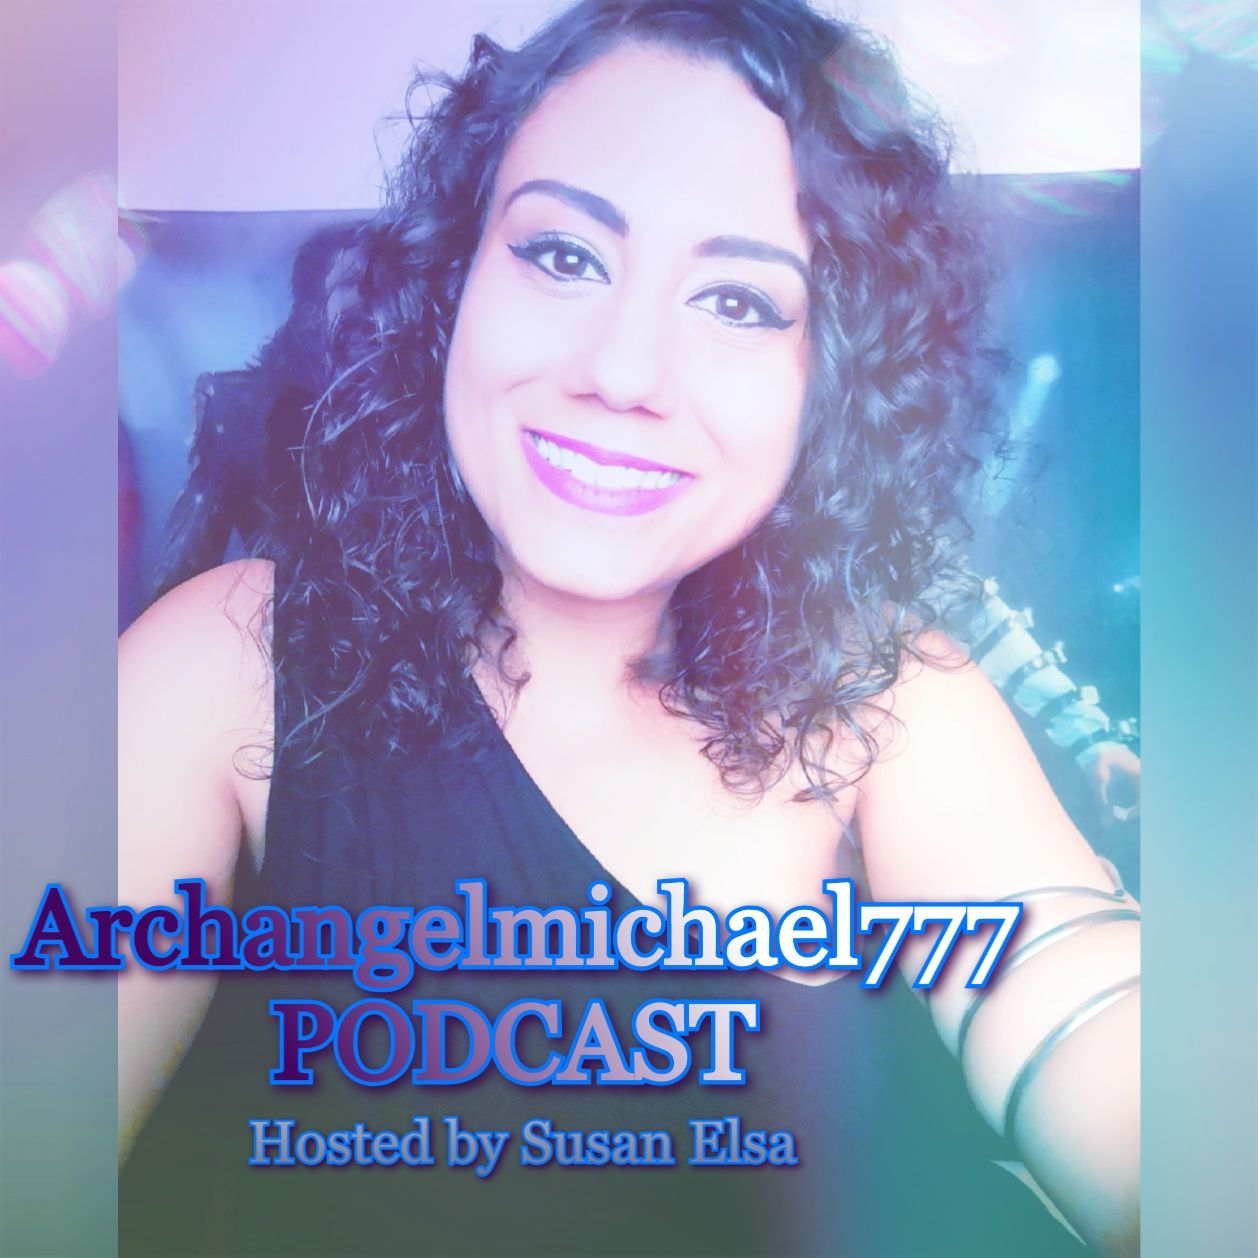 ArchangelMichael777 TwinFlame Soul Podcast 2020